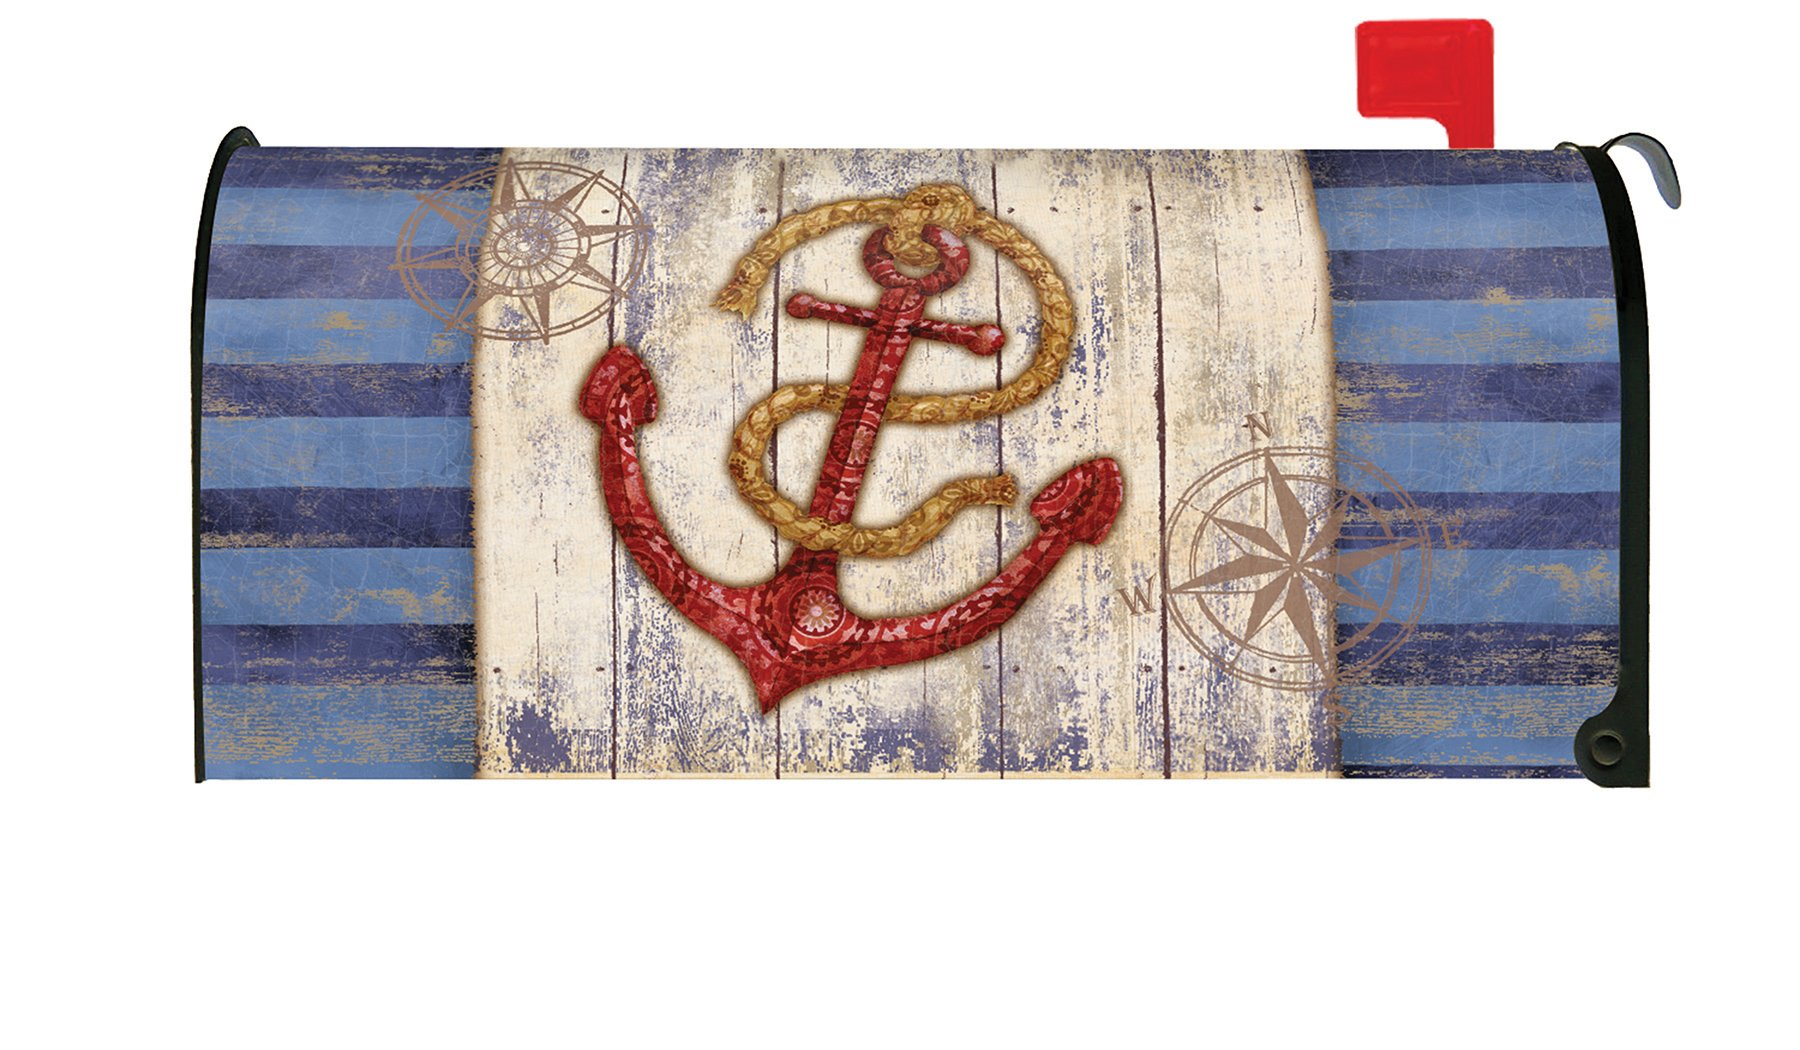 Toland Home Garden Rustic Anchor and Compass Nautical Maritime Magnetic Mailbox Cover by Toland Home Garden